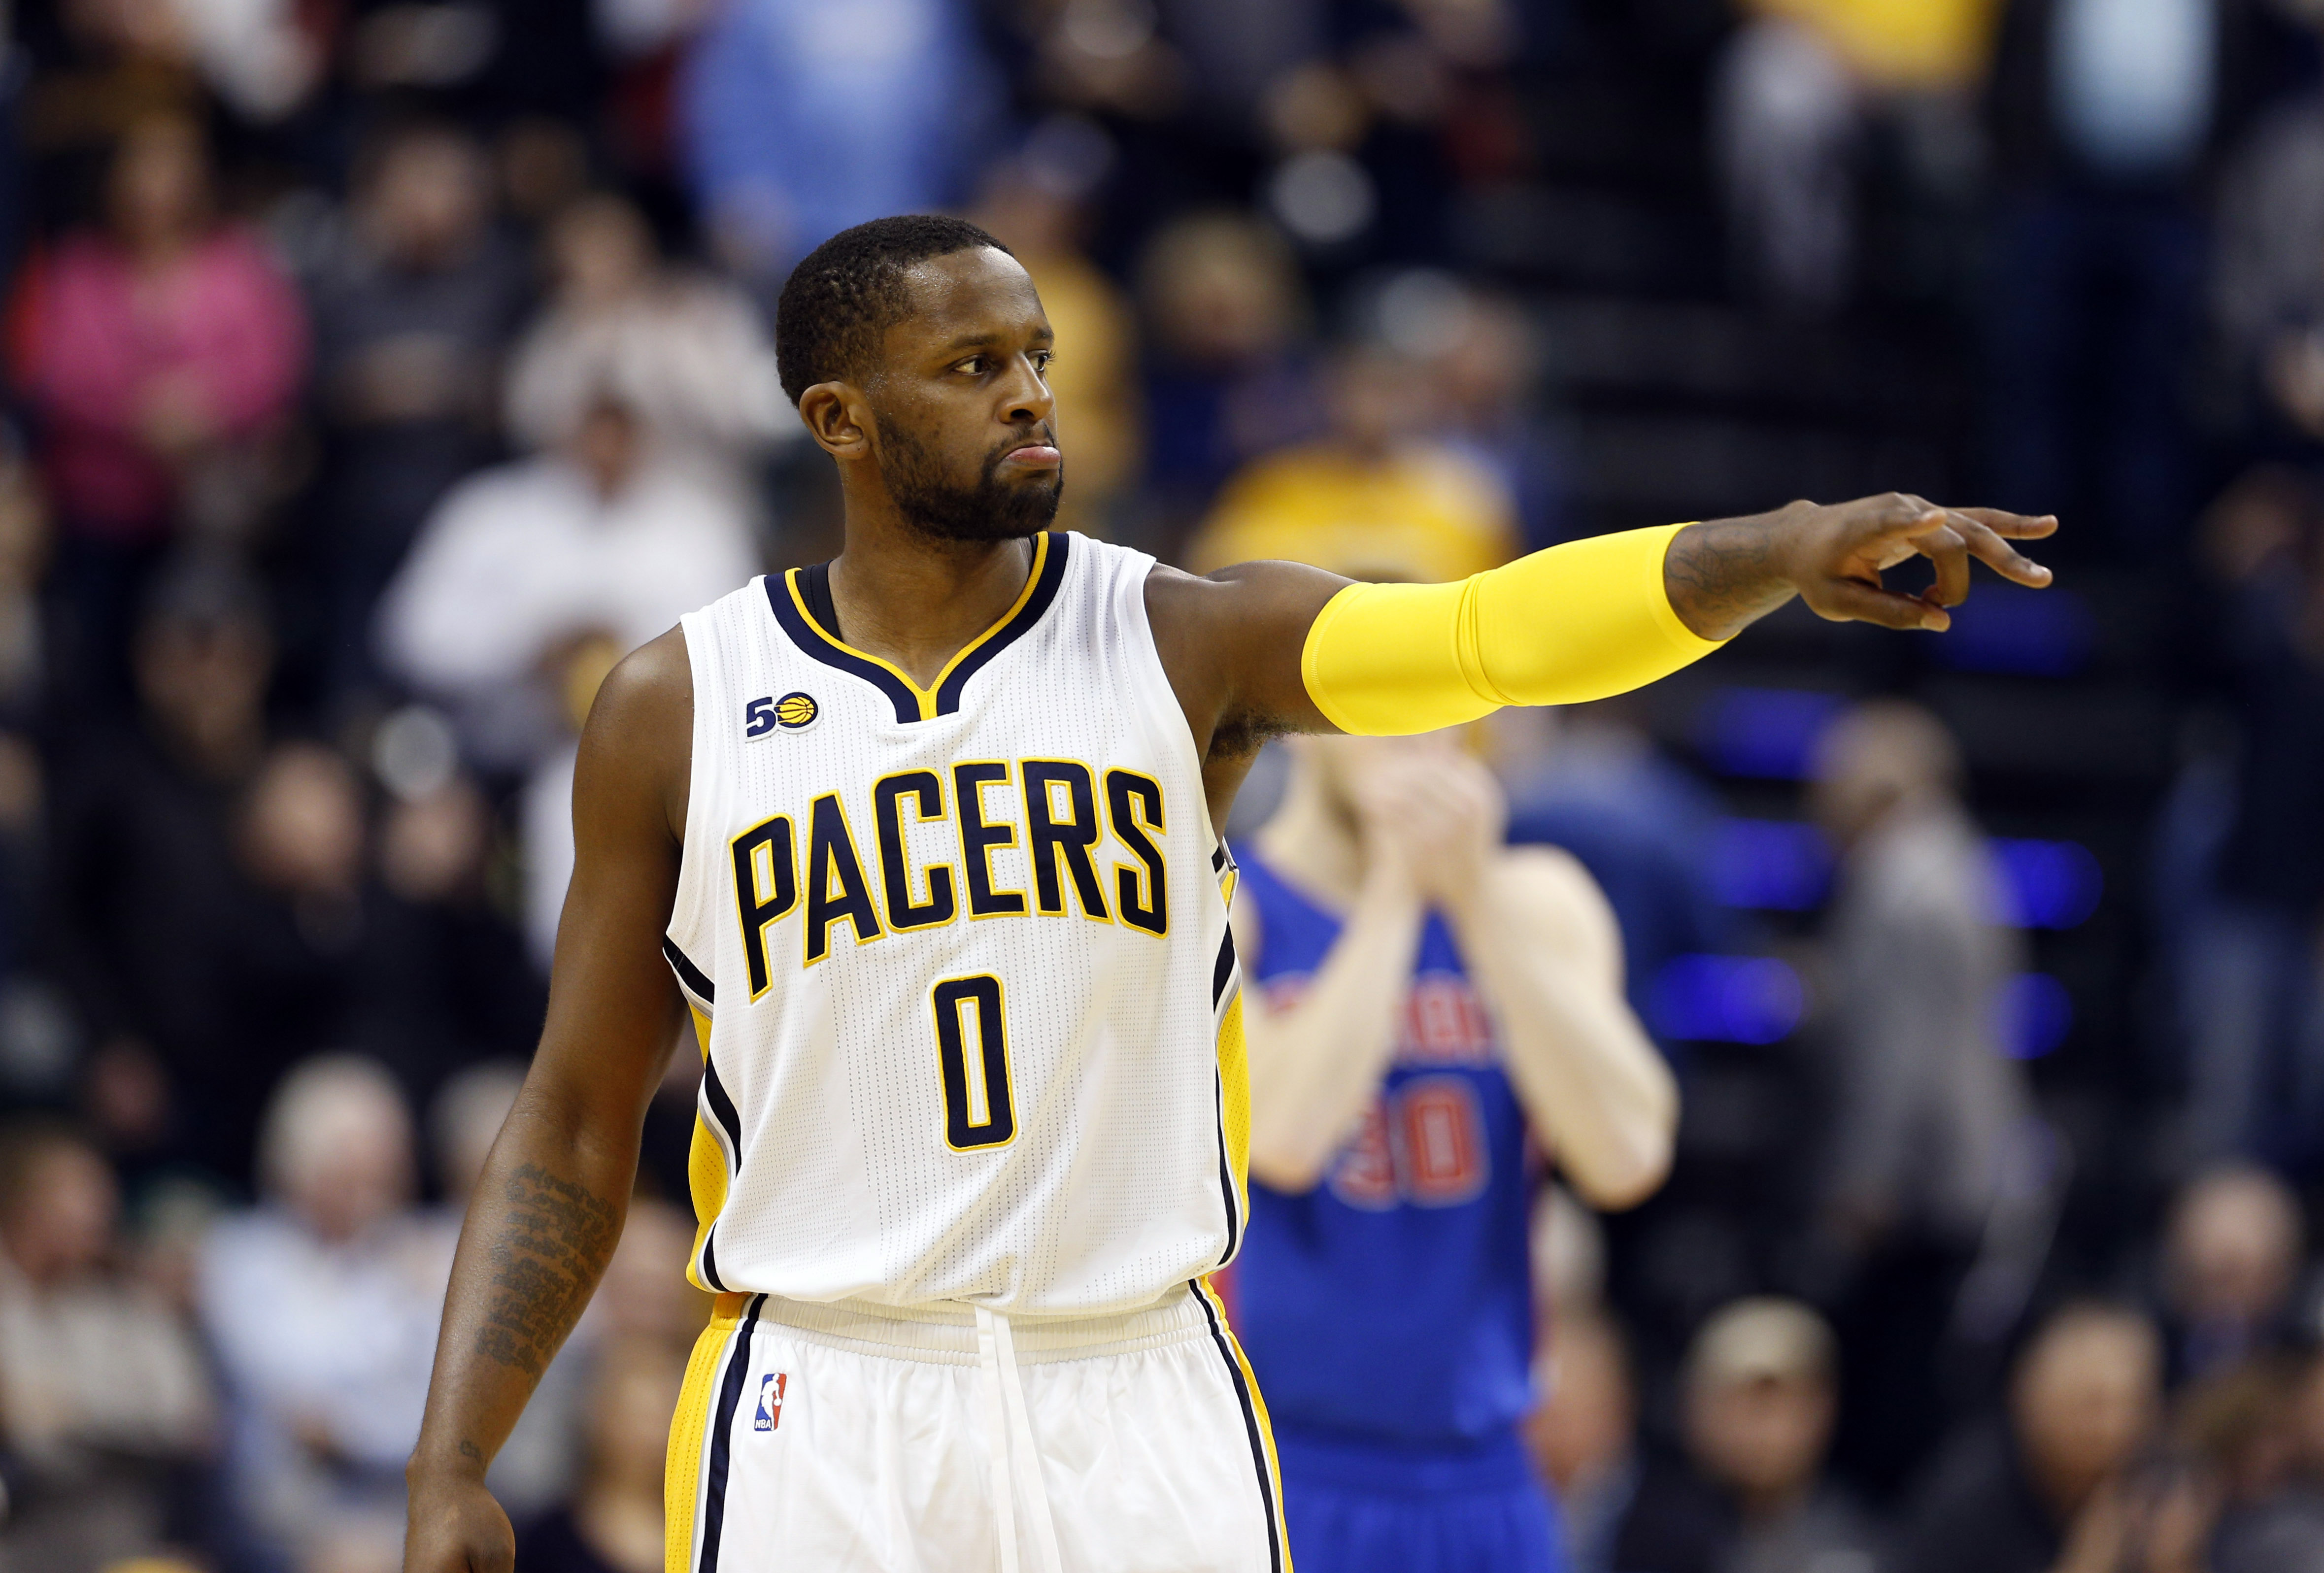 9858456-nba-detroit-pistons-at-indiana-pacers